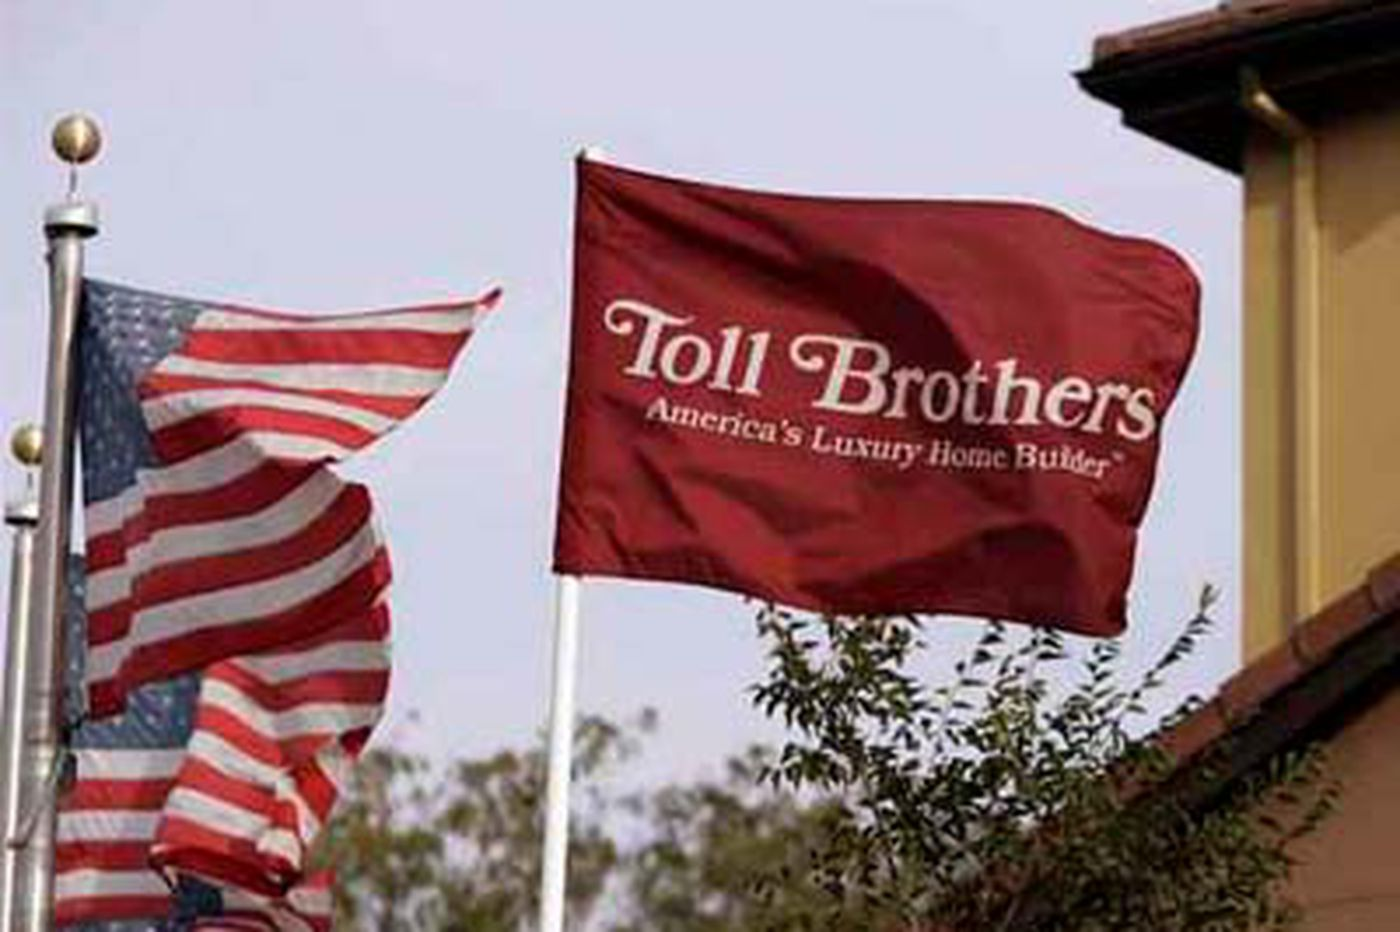 Rough Q4, but Toll Bros. expects stronger 2014